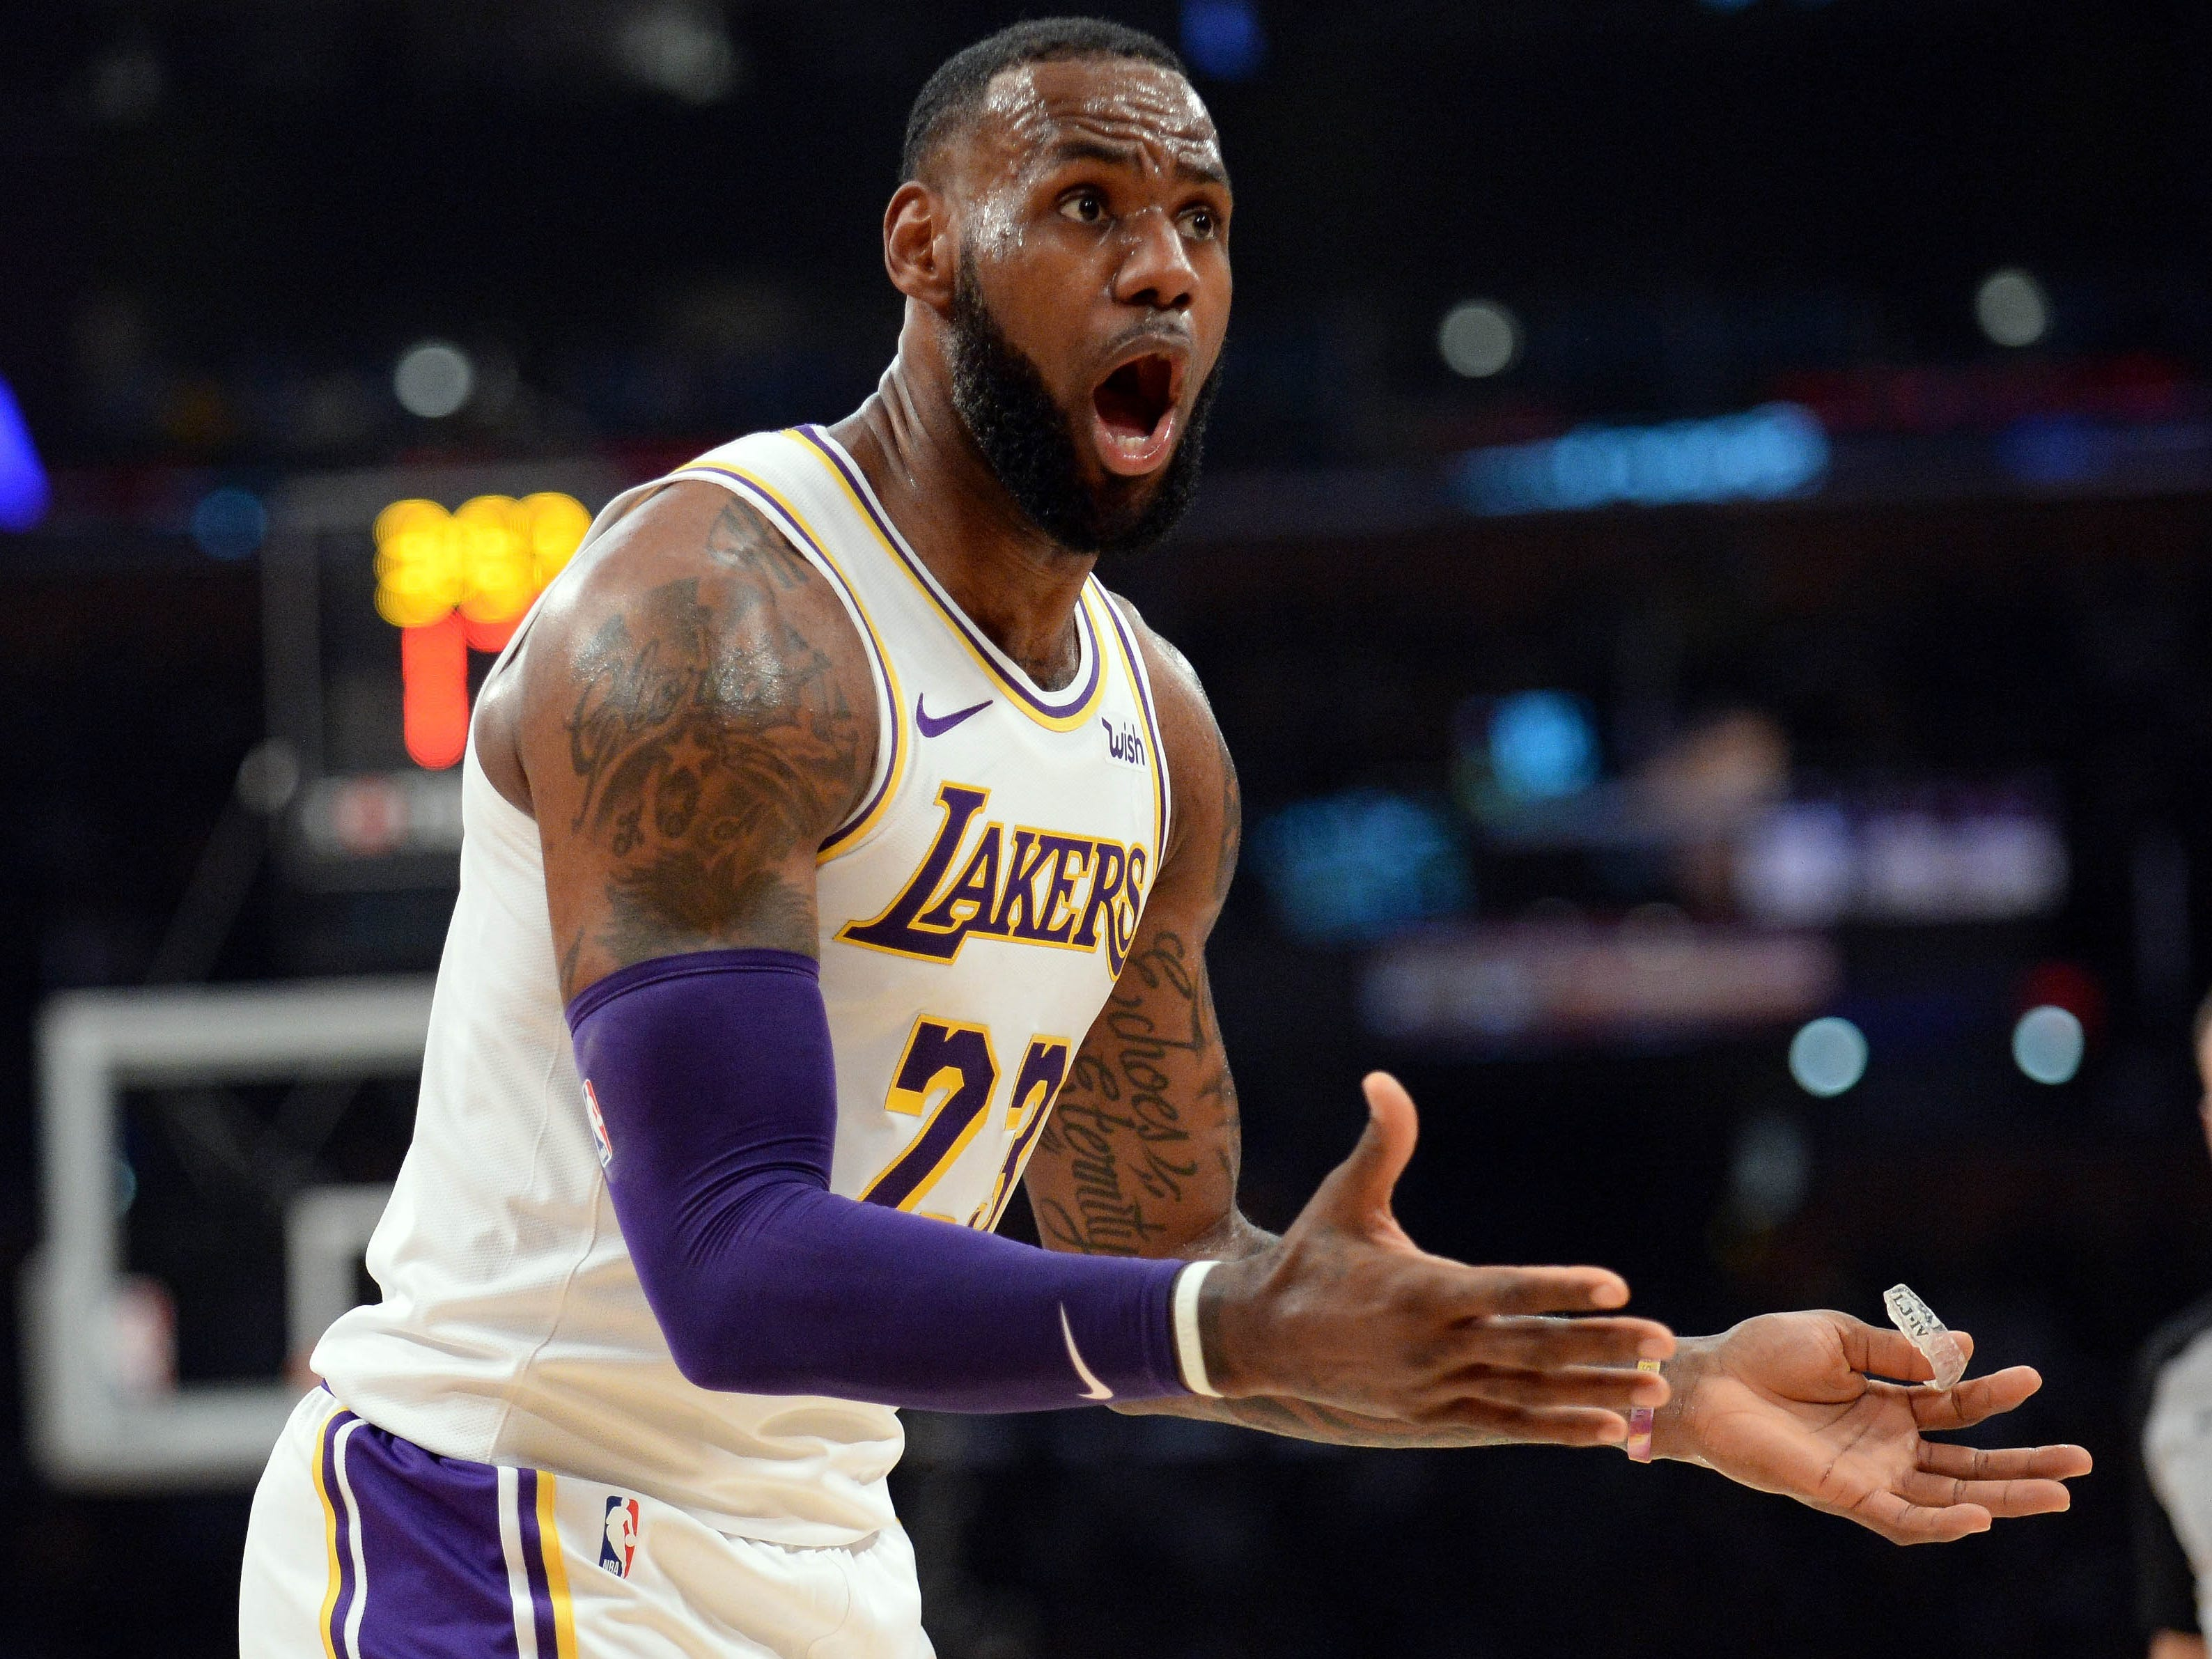 Nov. 4, 2018: James couldn't believe the first-half call and later couldn't believe the final result as the Lakers suffered an embarrassing home loss to the Raptors.